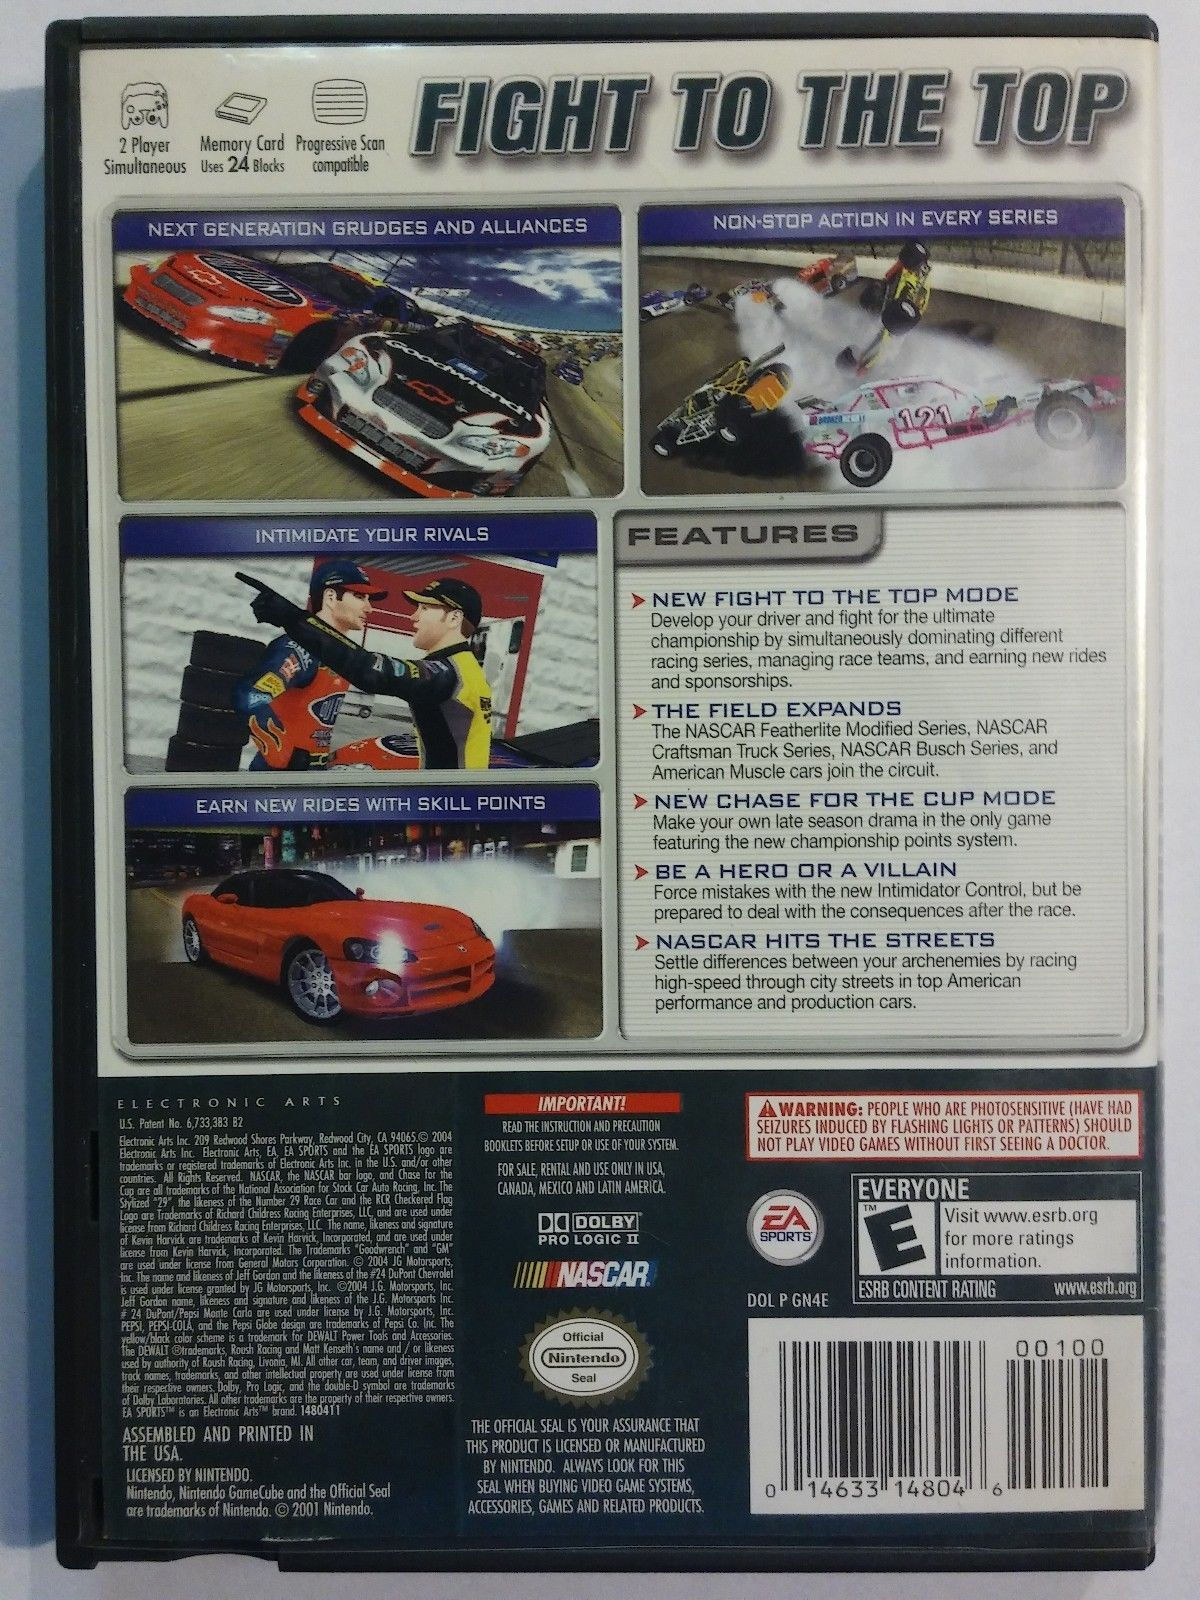 NASCAR 2005: Chase for the Cup [Nintendo GameCube, 2004] wii racing driving game image 3